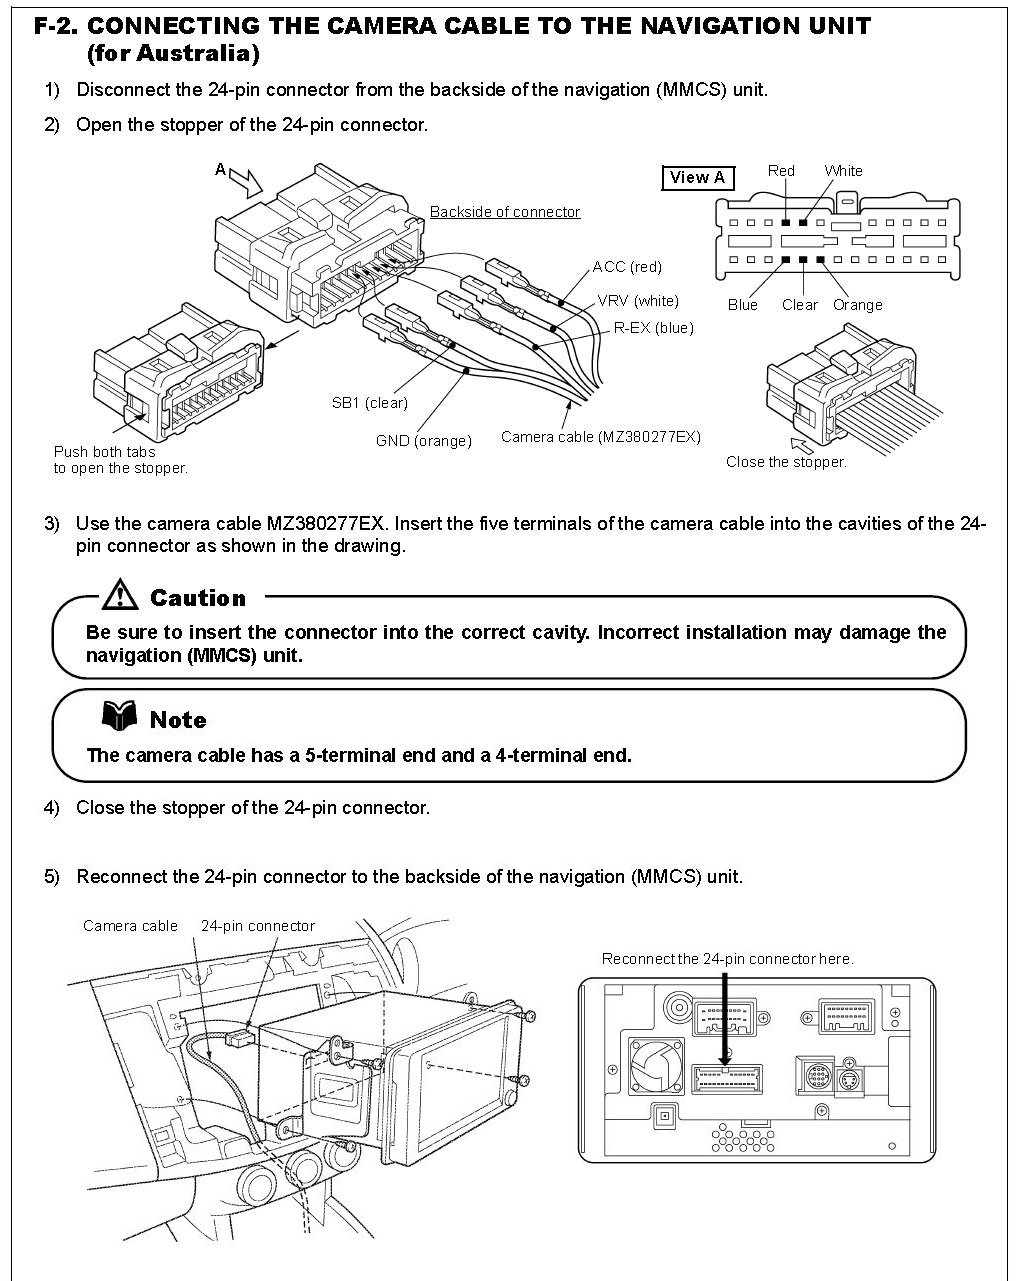 How Do I Remove The Wires From A 24 Pin Connector In My Mmcs Unit So Camera Phone Wire Wiring Diagram Graphic